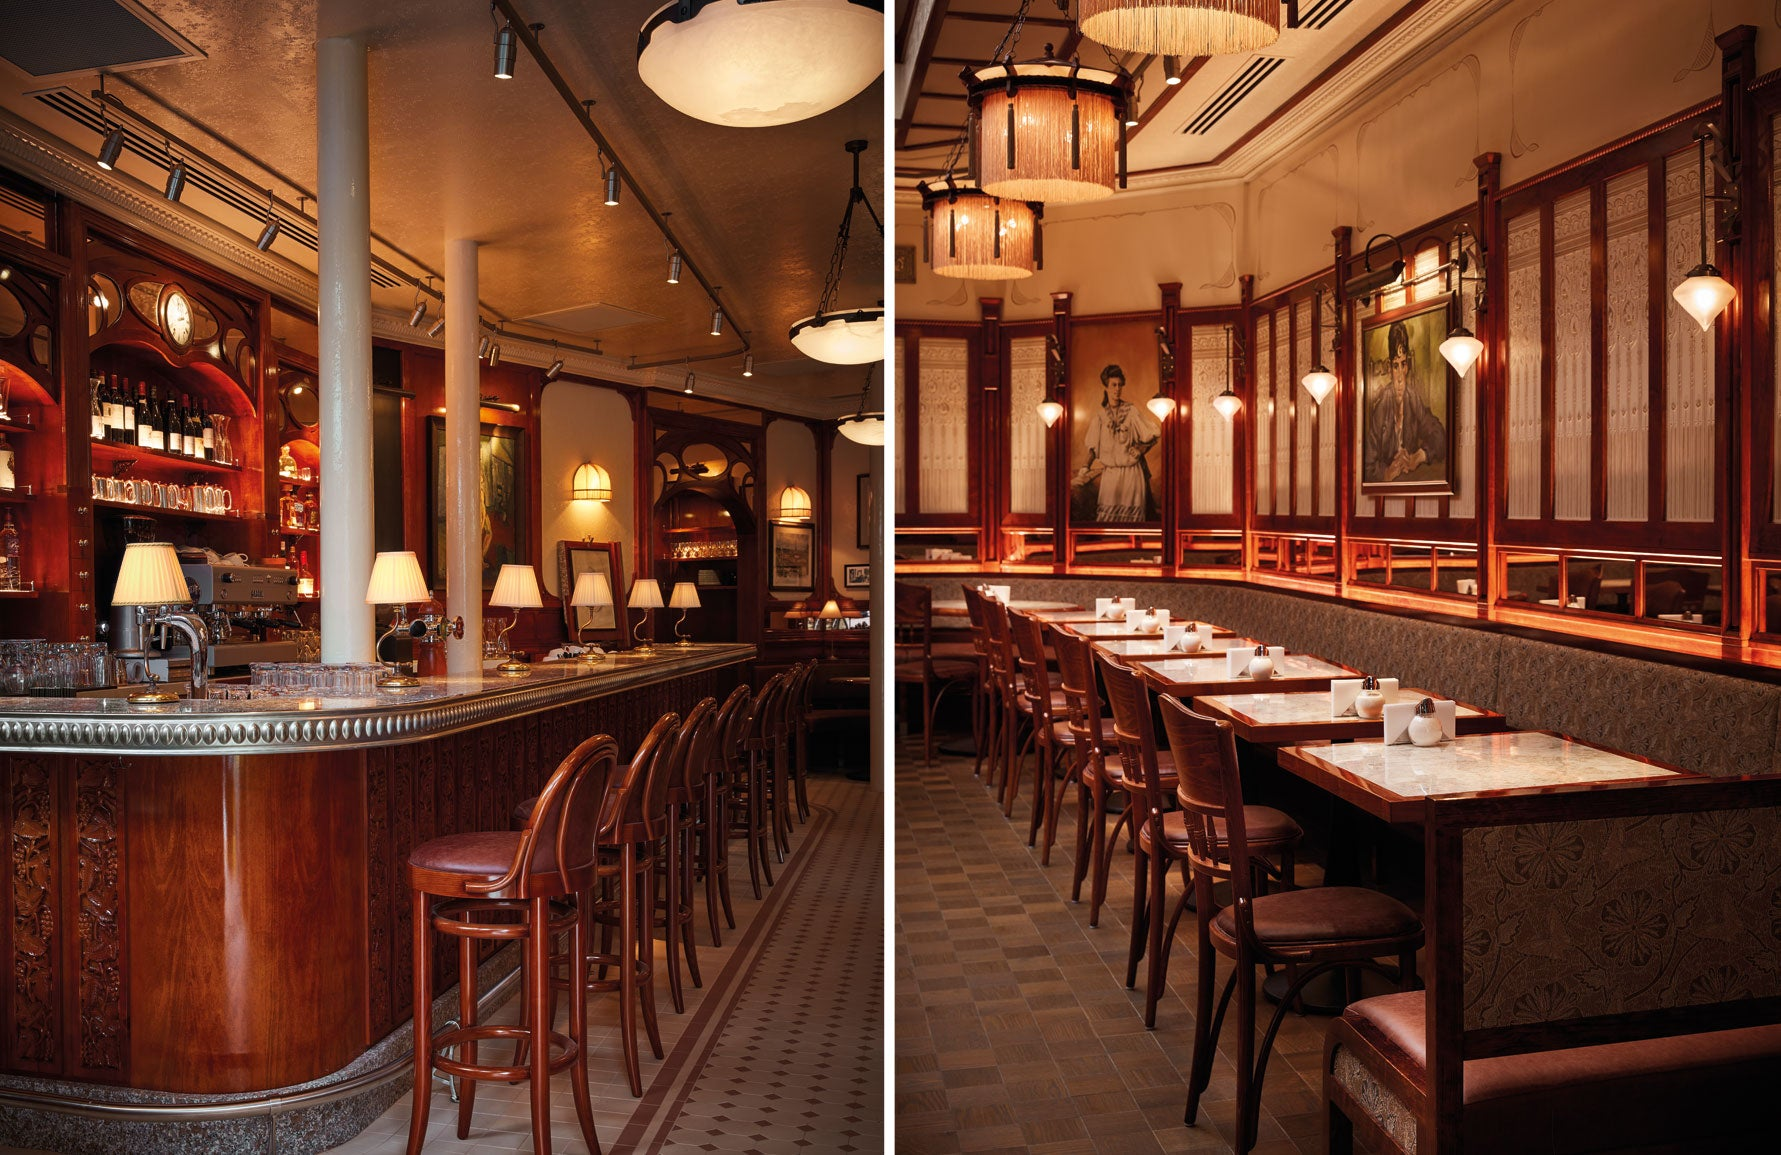 BradyWilliams | Luxury Restaurant Design | Soutine | LuxDeco.com | The Luxurist